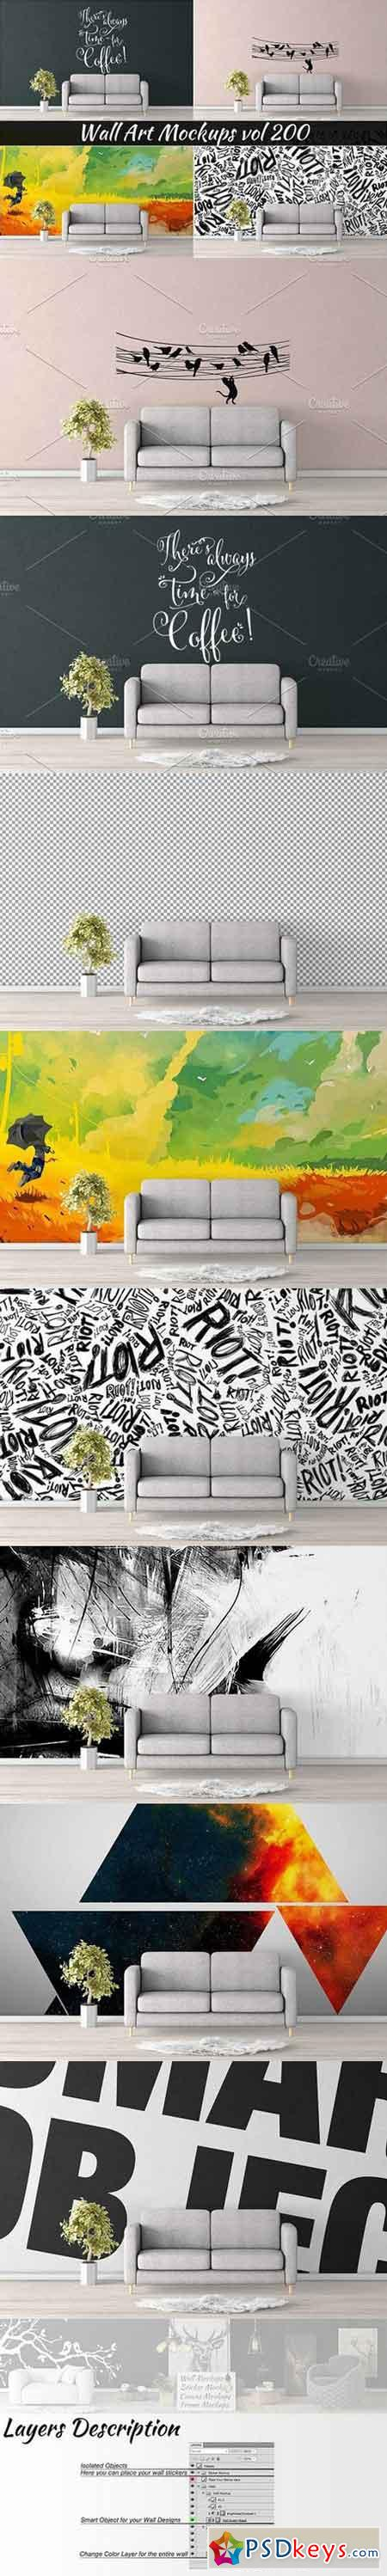 Wall Mockup - Sticker Mockup Vol 200 1123649